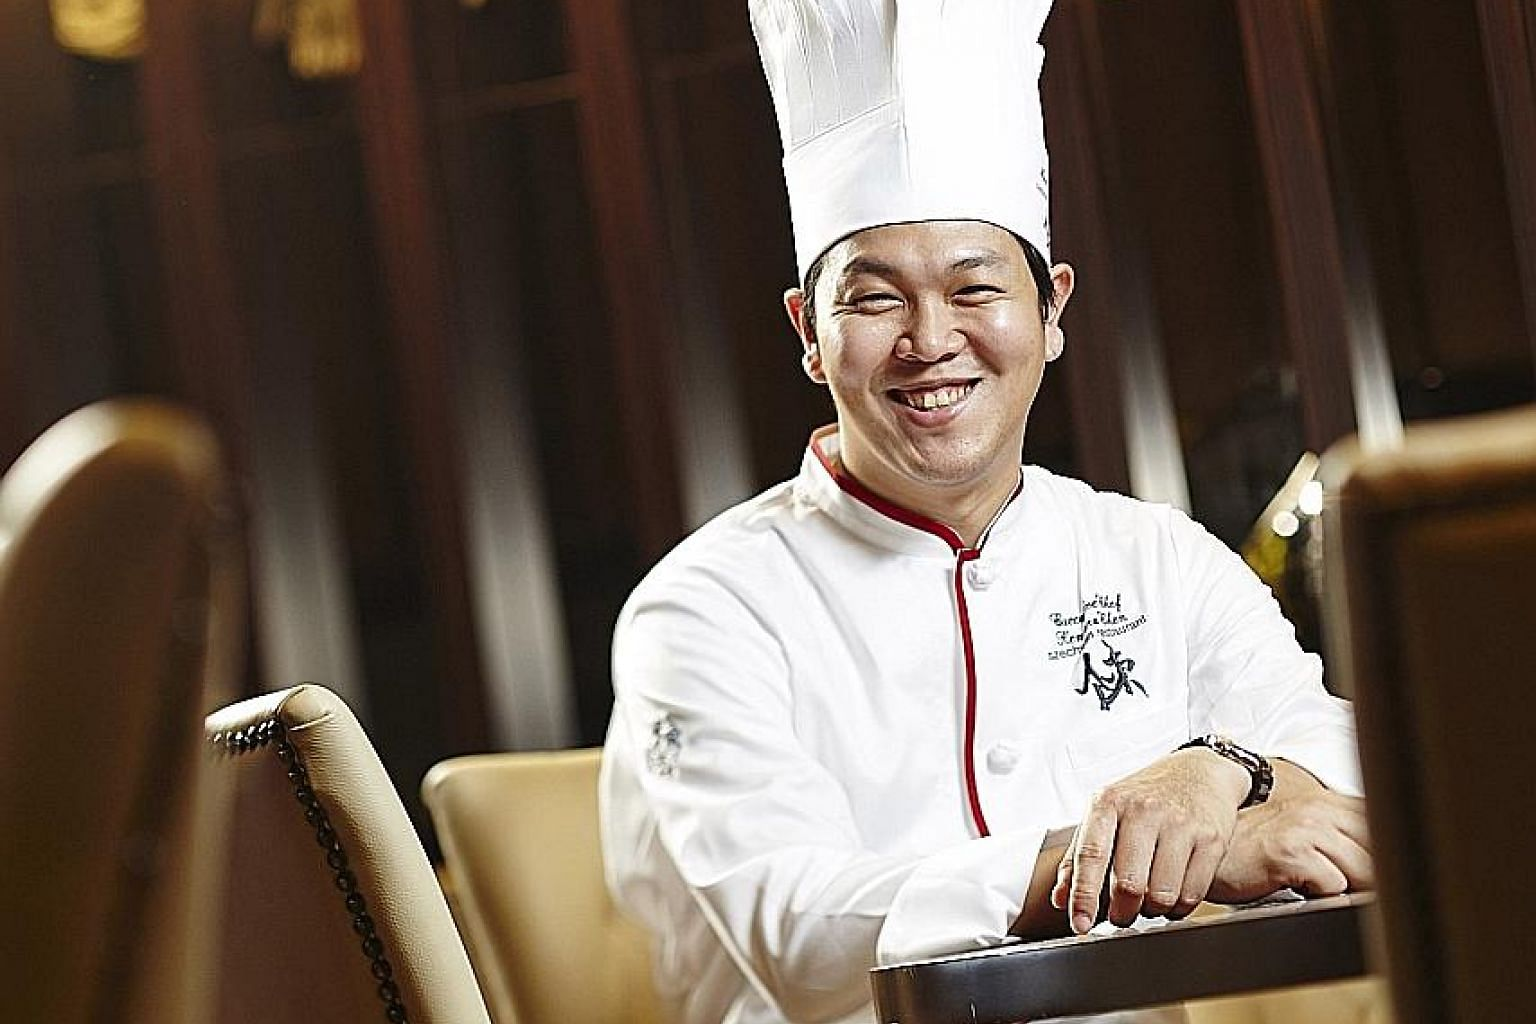 Each of the six off-the-menu courses prepared by Chef Kentaro on Jan 13 will be paired with top wines rated 90 Robert Parker points and above.